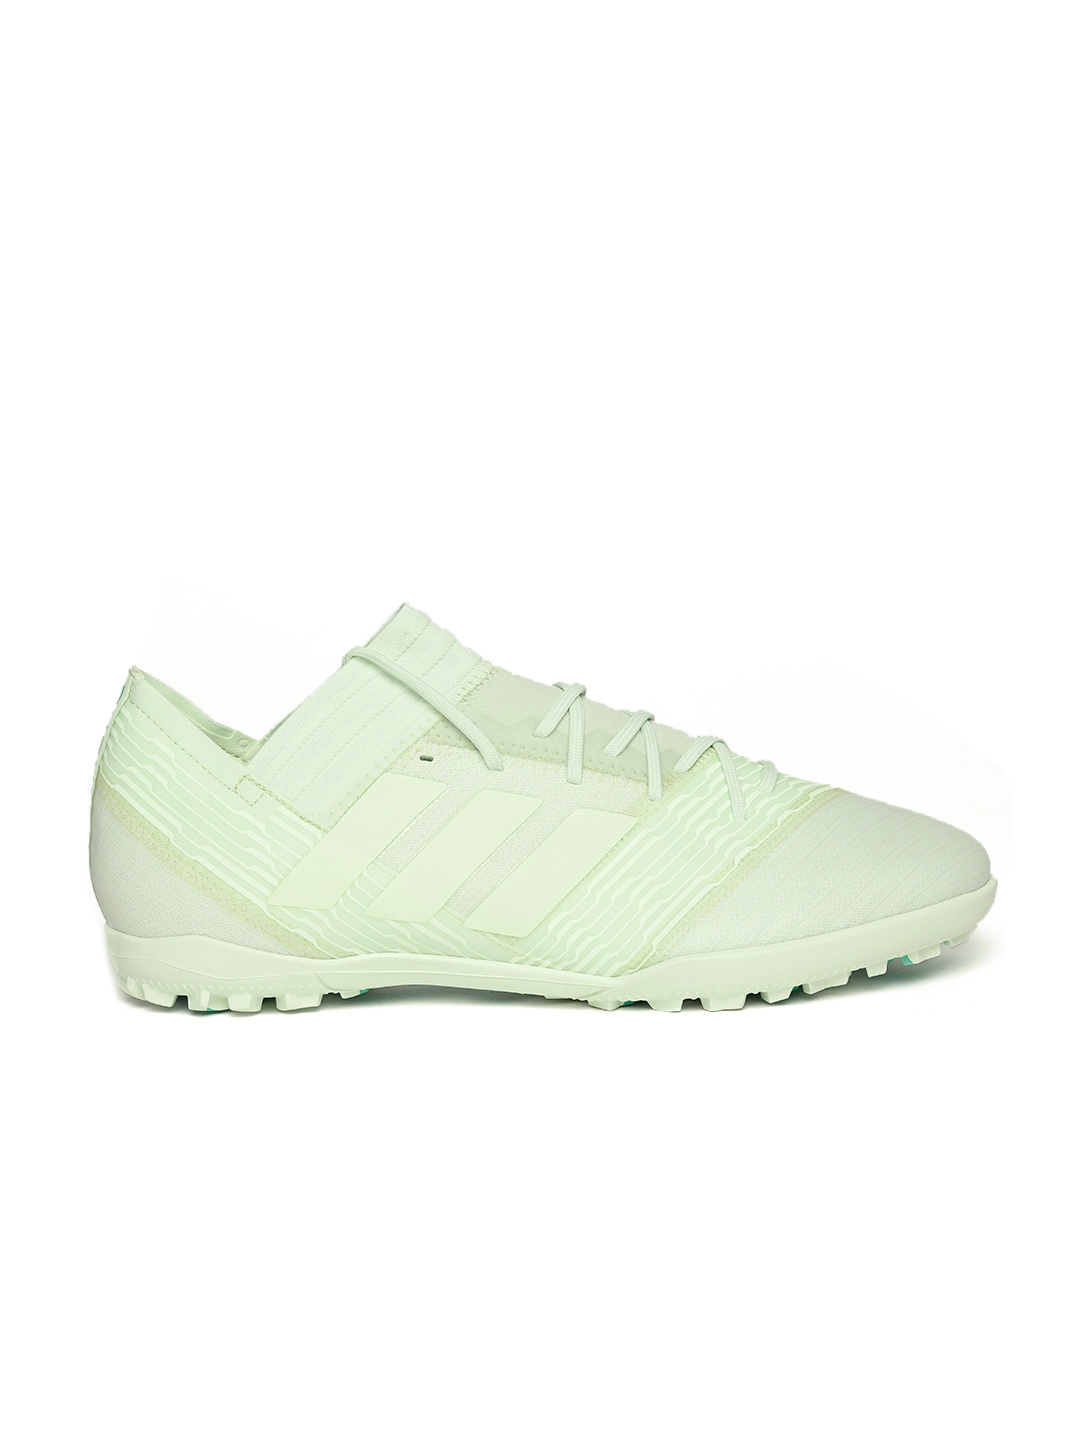 buy online 6f78d cd9fe ADIDAS Men Light Green NEMEZIZ Tango 17.3 Turf Shoes